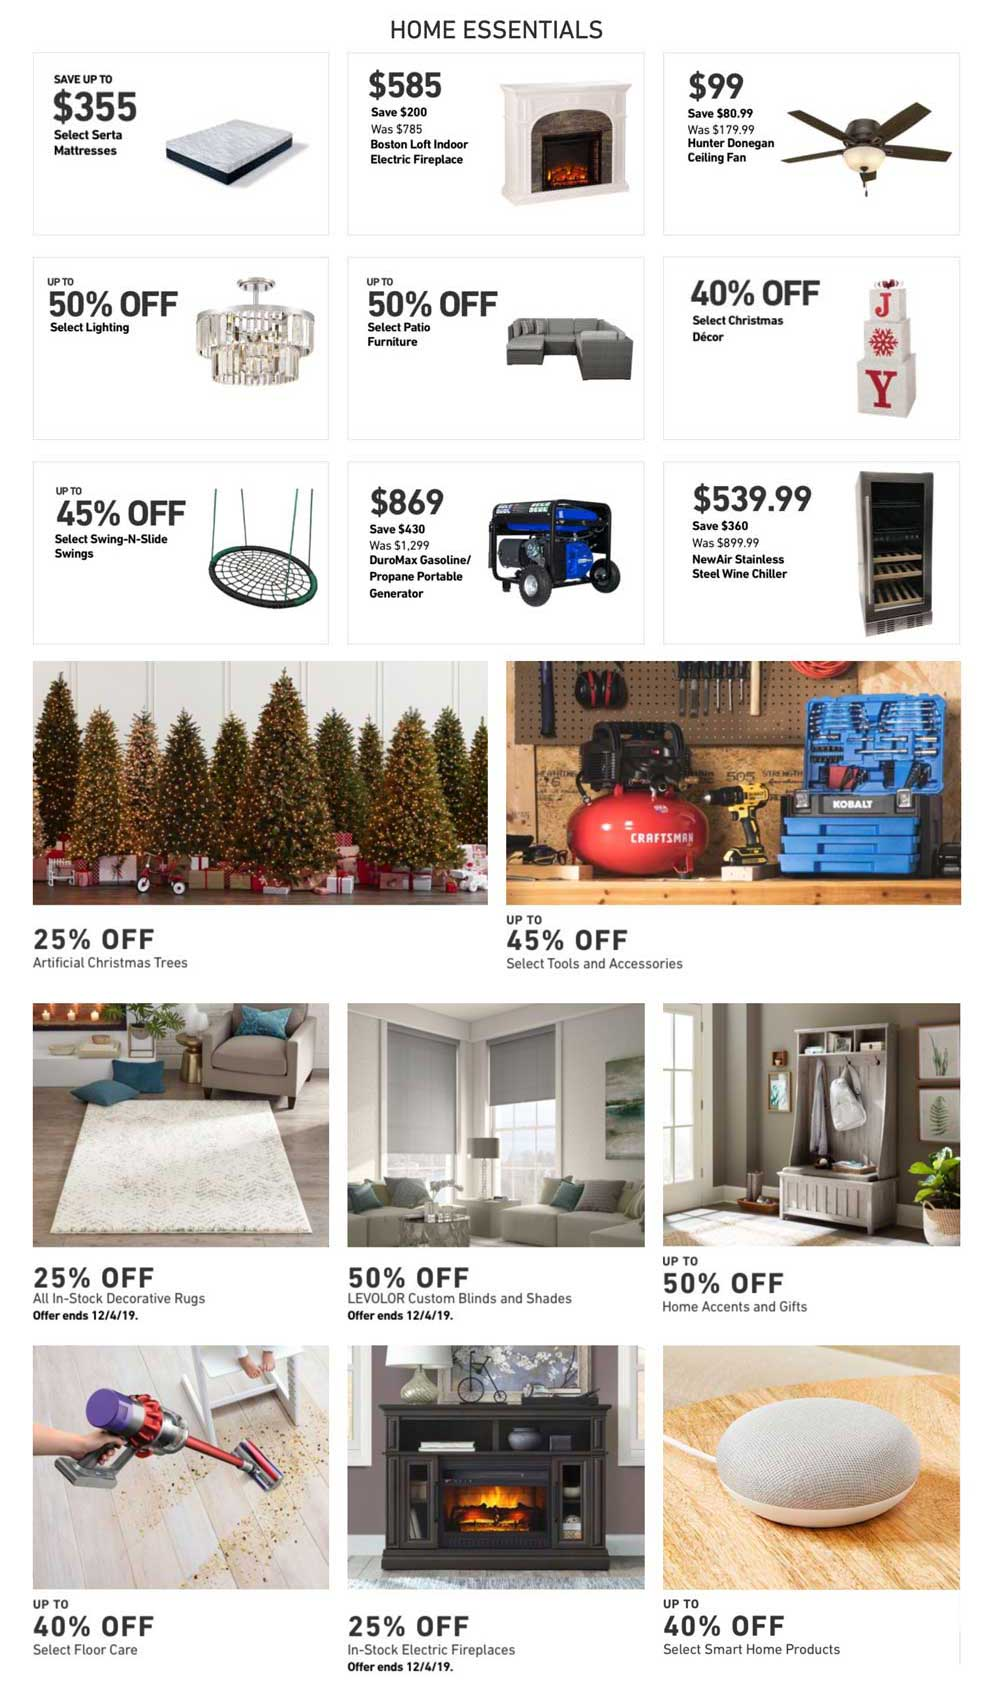 Lowe's Cyber Monday 2019 Page 2